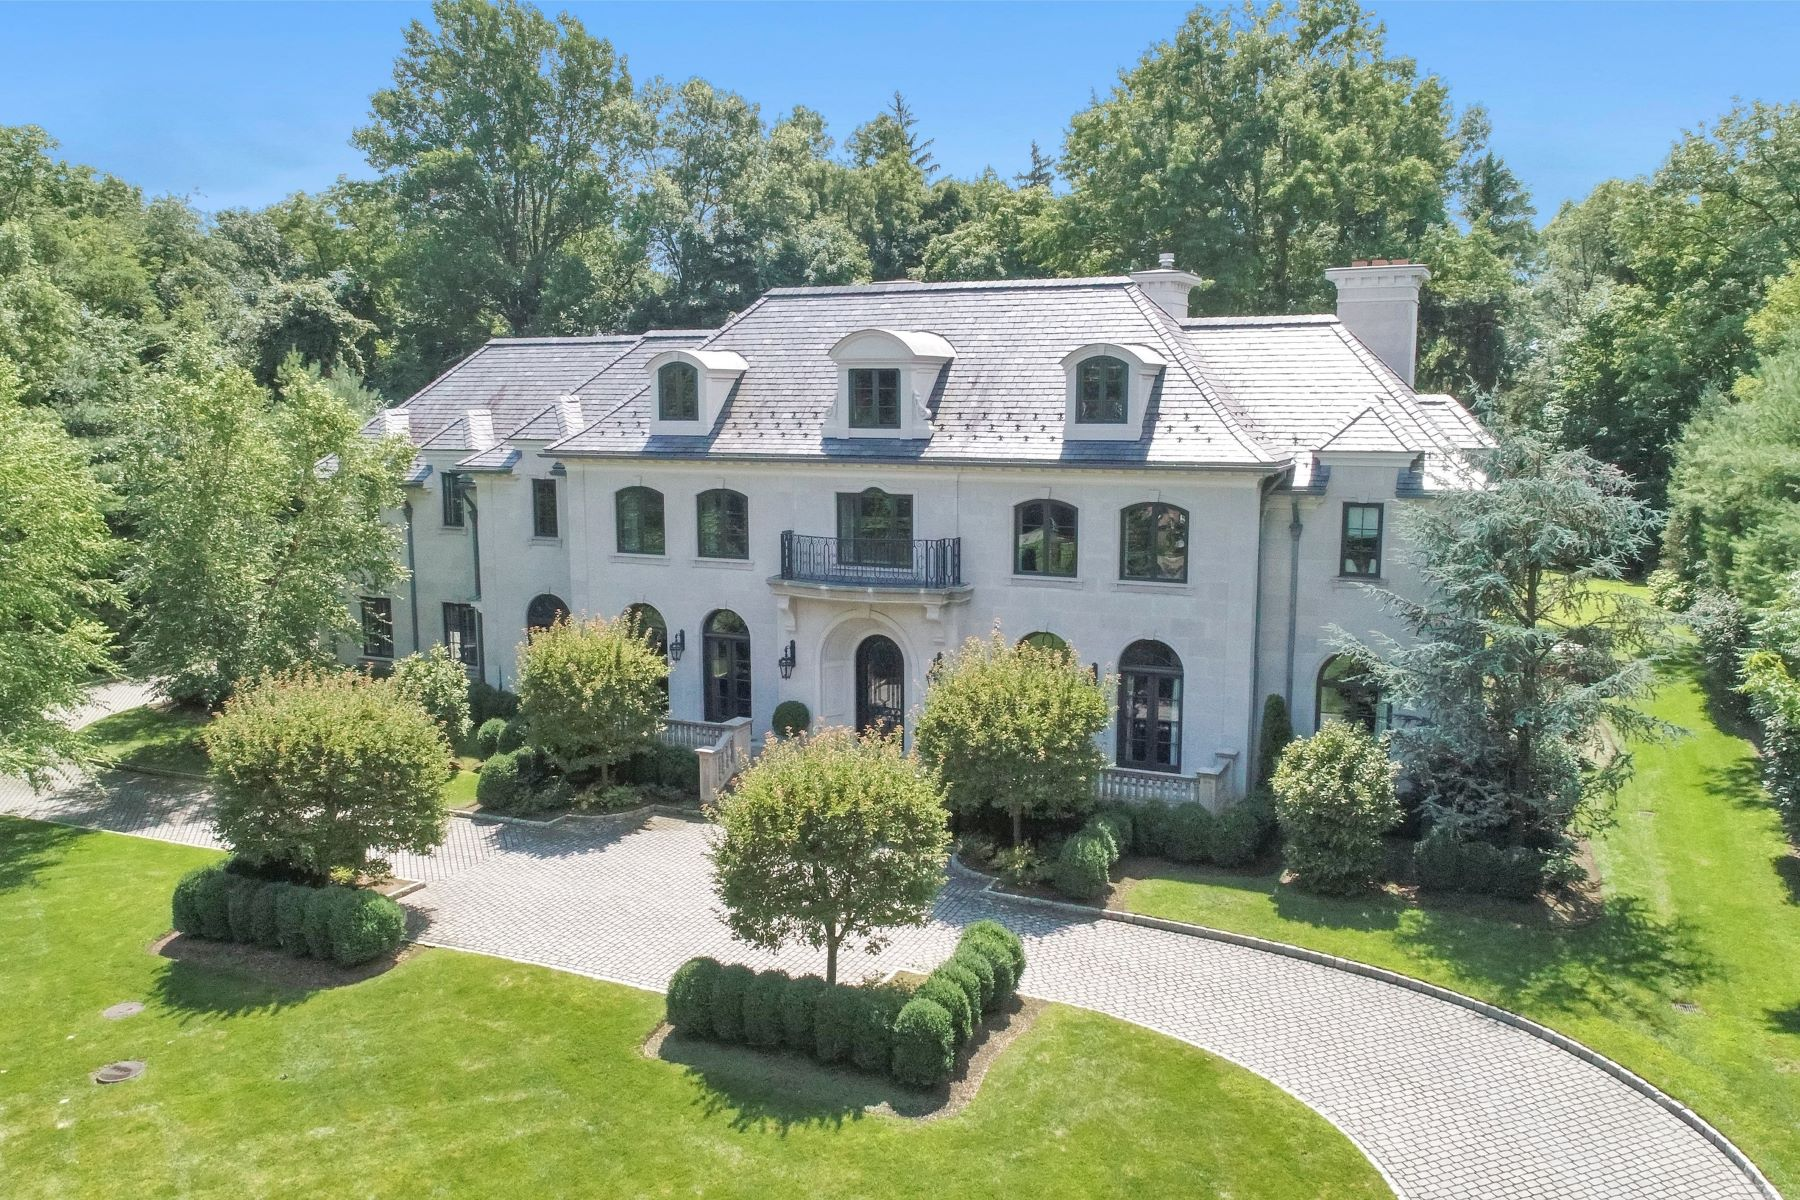 Single Family Home for Sale at Gracious Colonial Manor Alpine, New Jersey 07620 United States